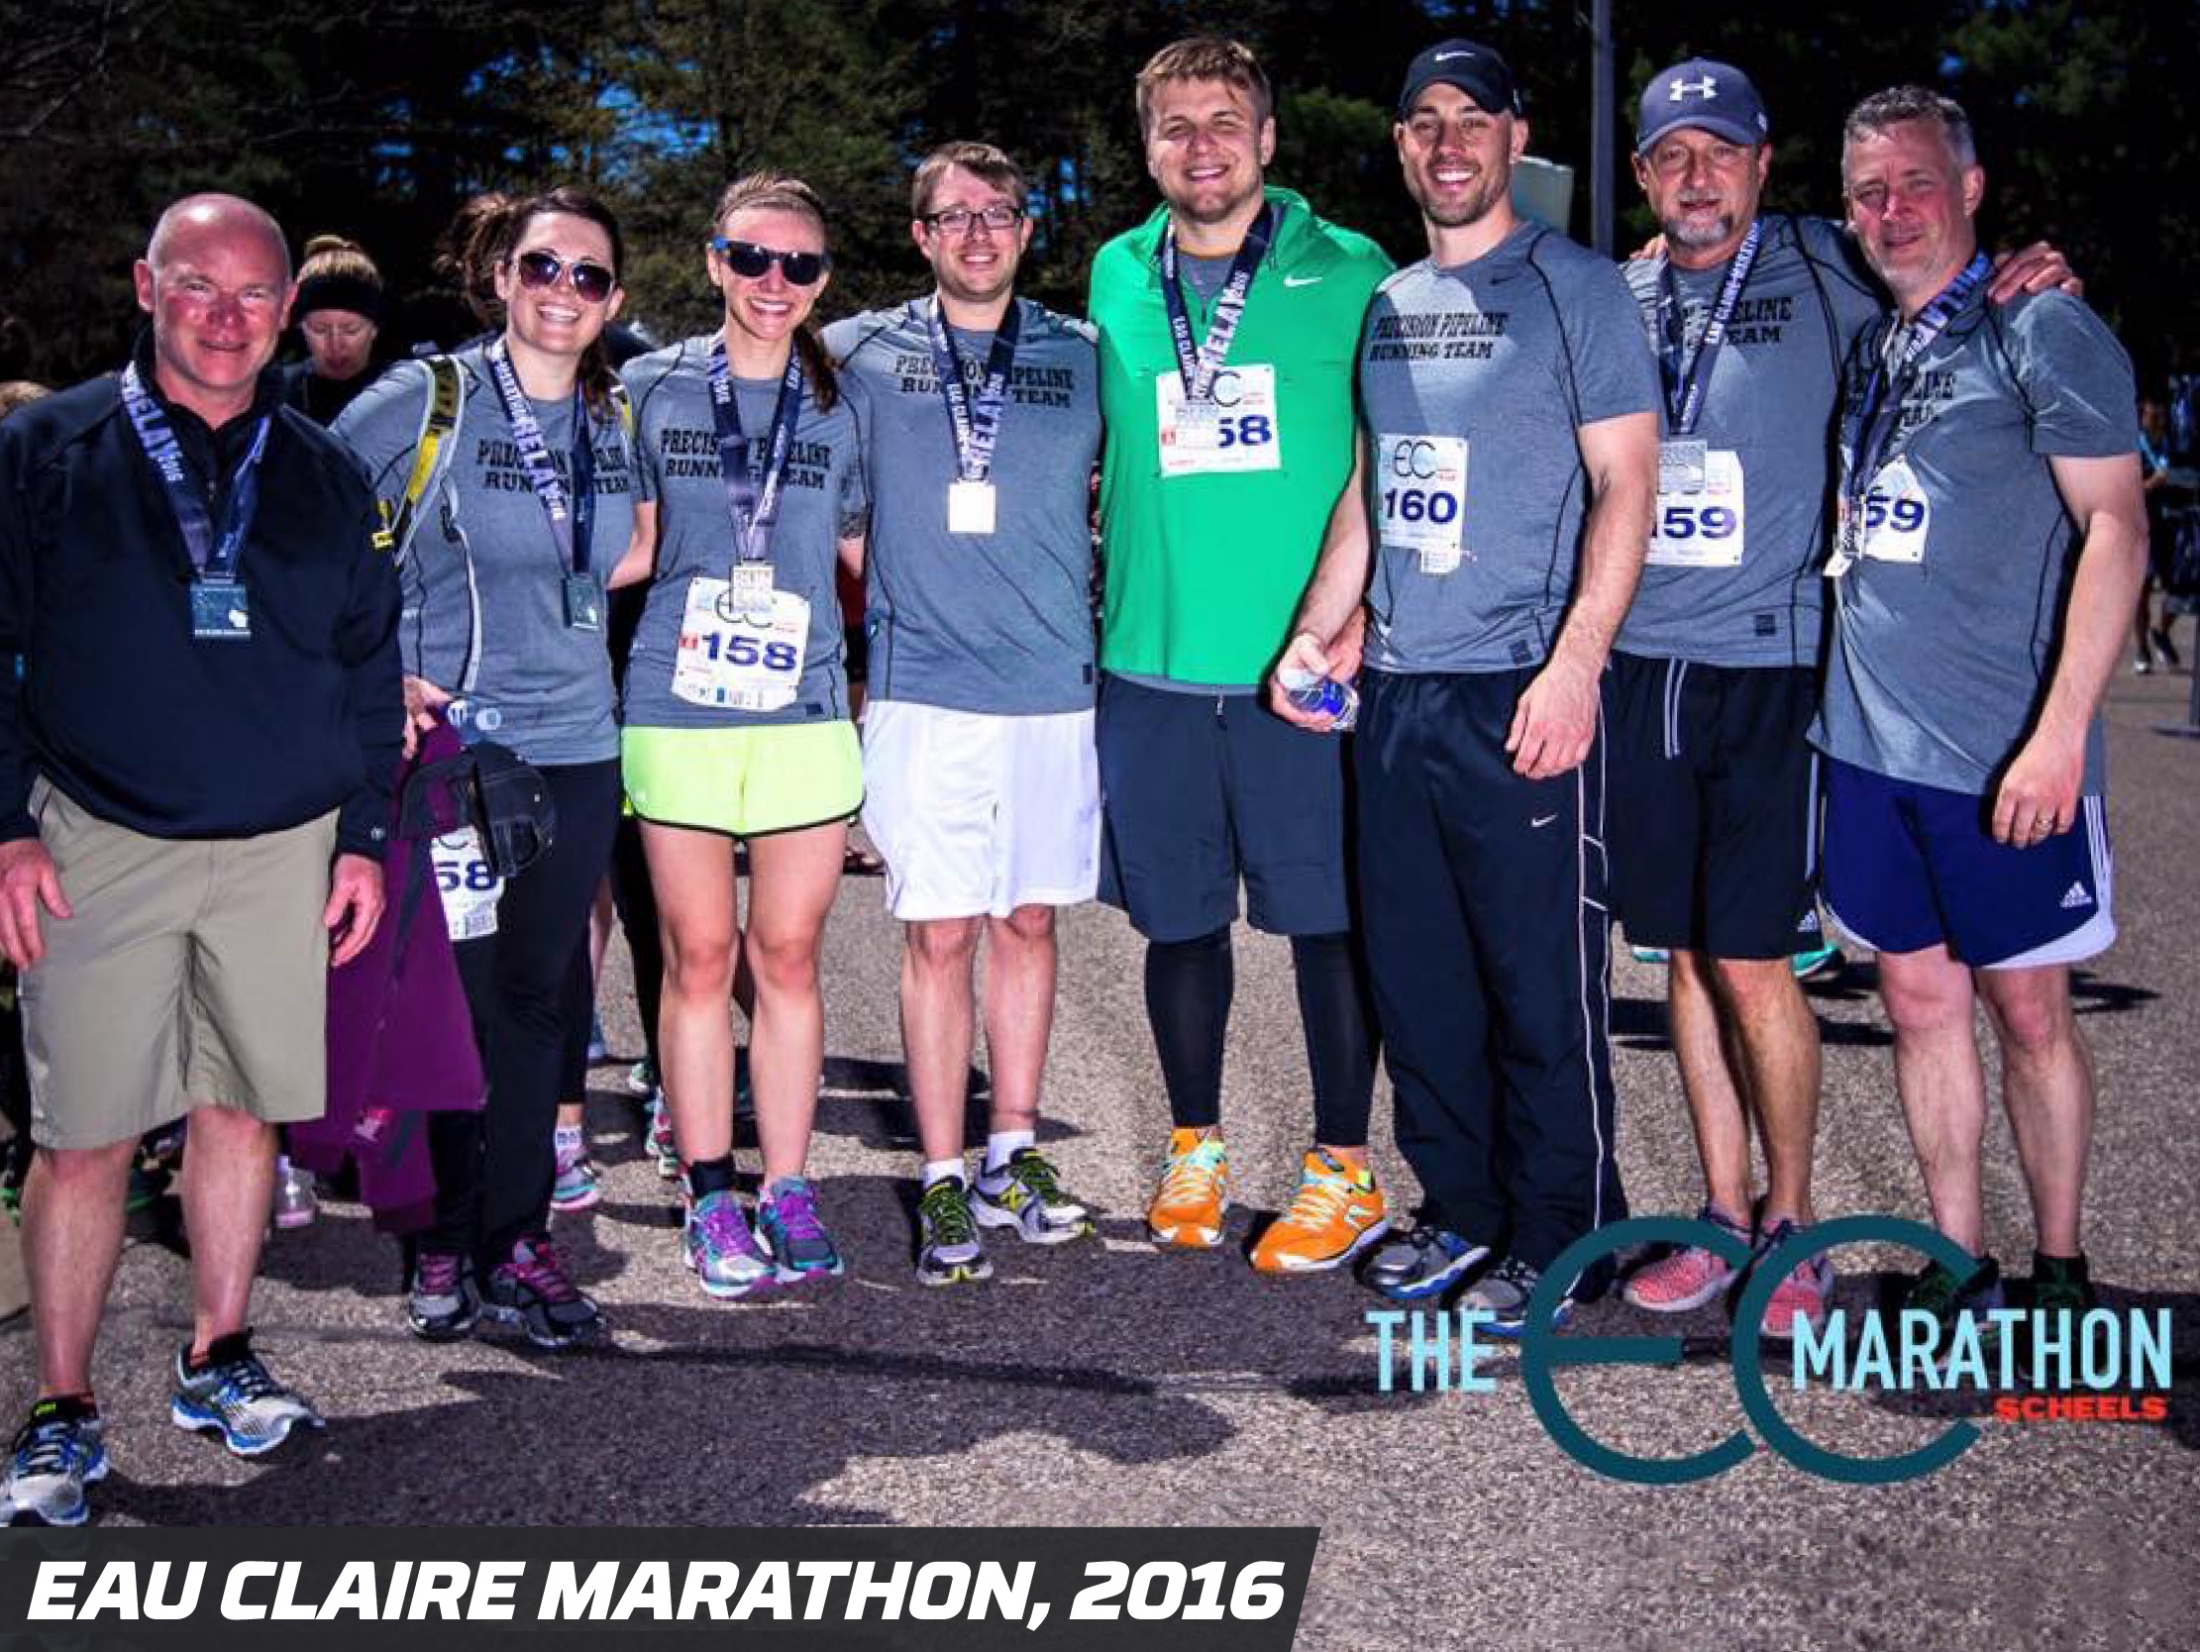 Precision Pipeline Community Involvement: Eau Claire Marathon 2016